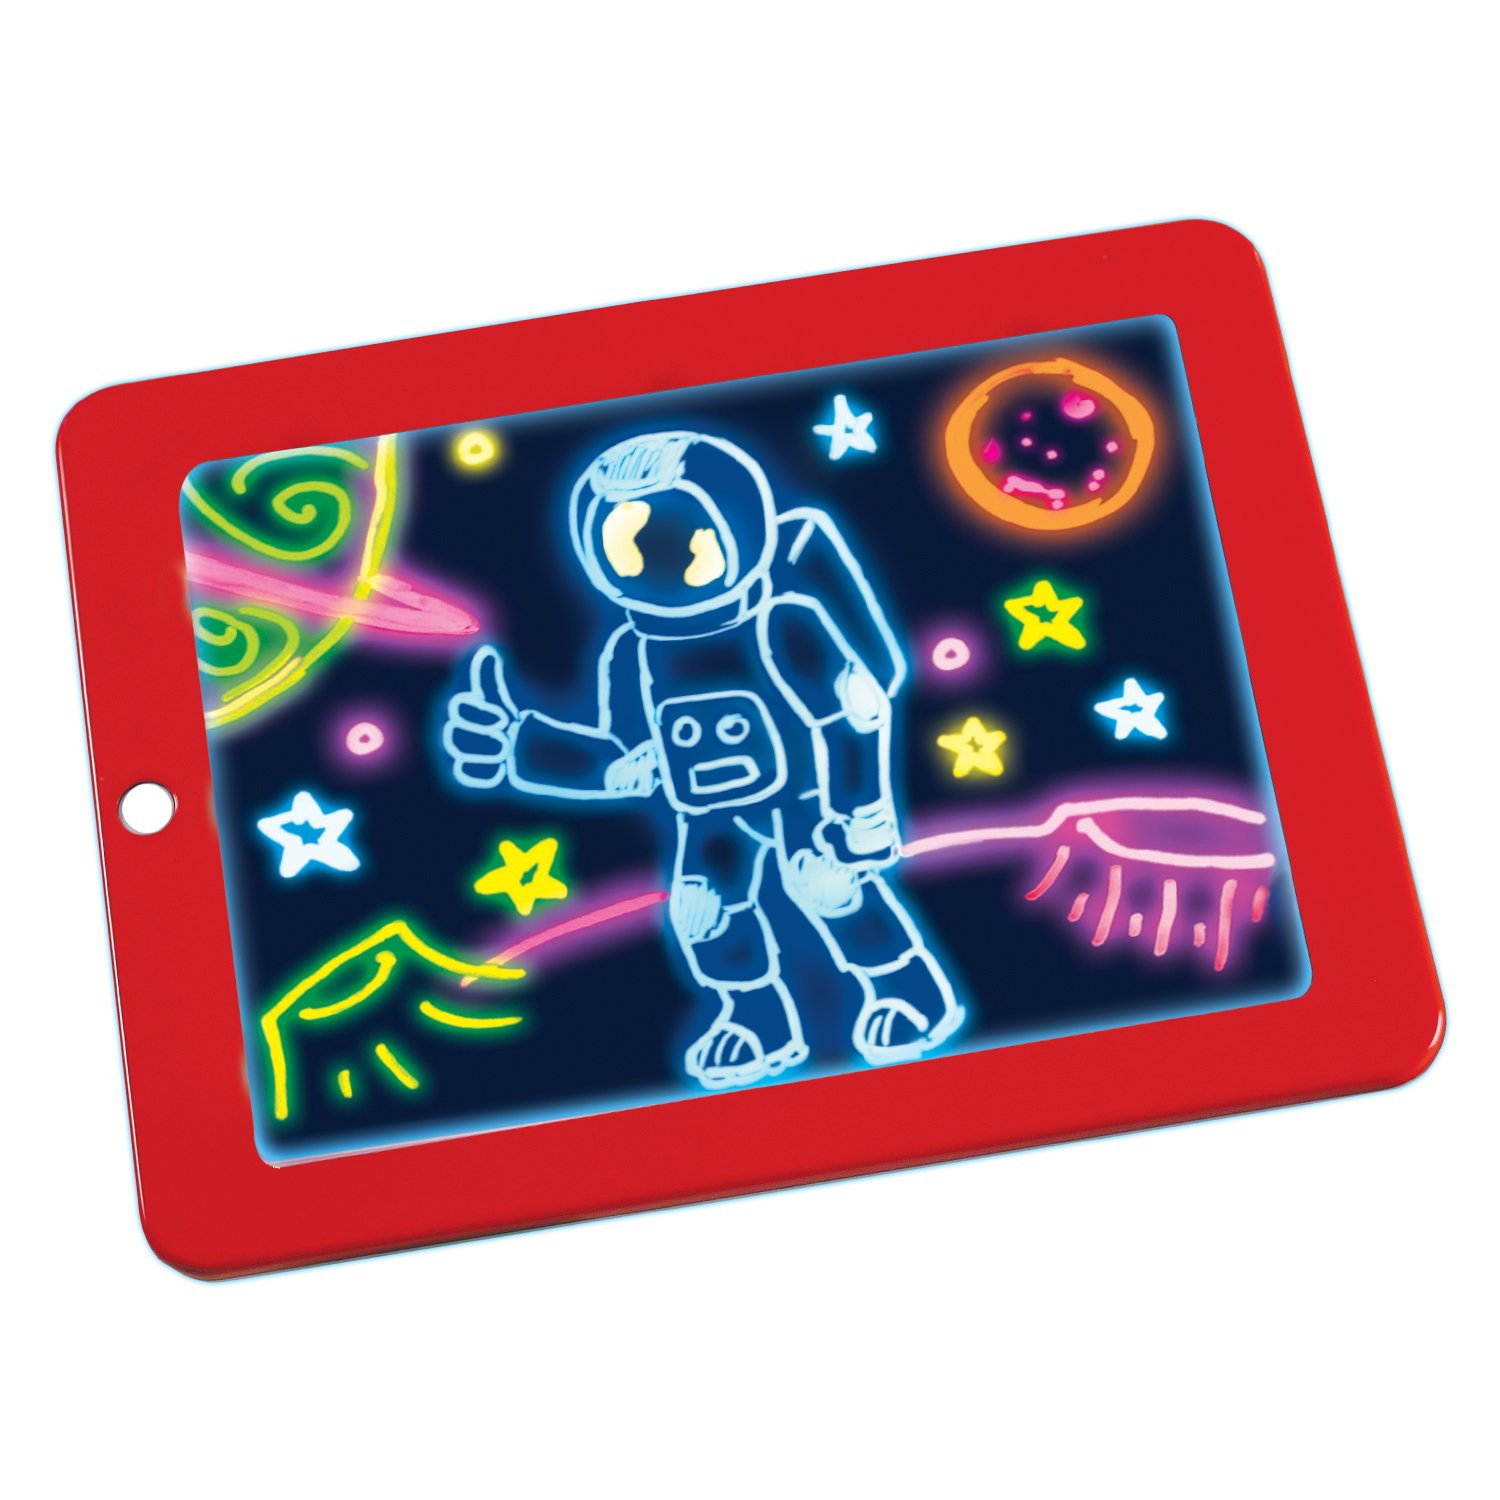 Ontel magic pad light up led board draw sketch create doodle art write learning tablet includes 3 dual side markets 30 stencils and 8 colorful